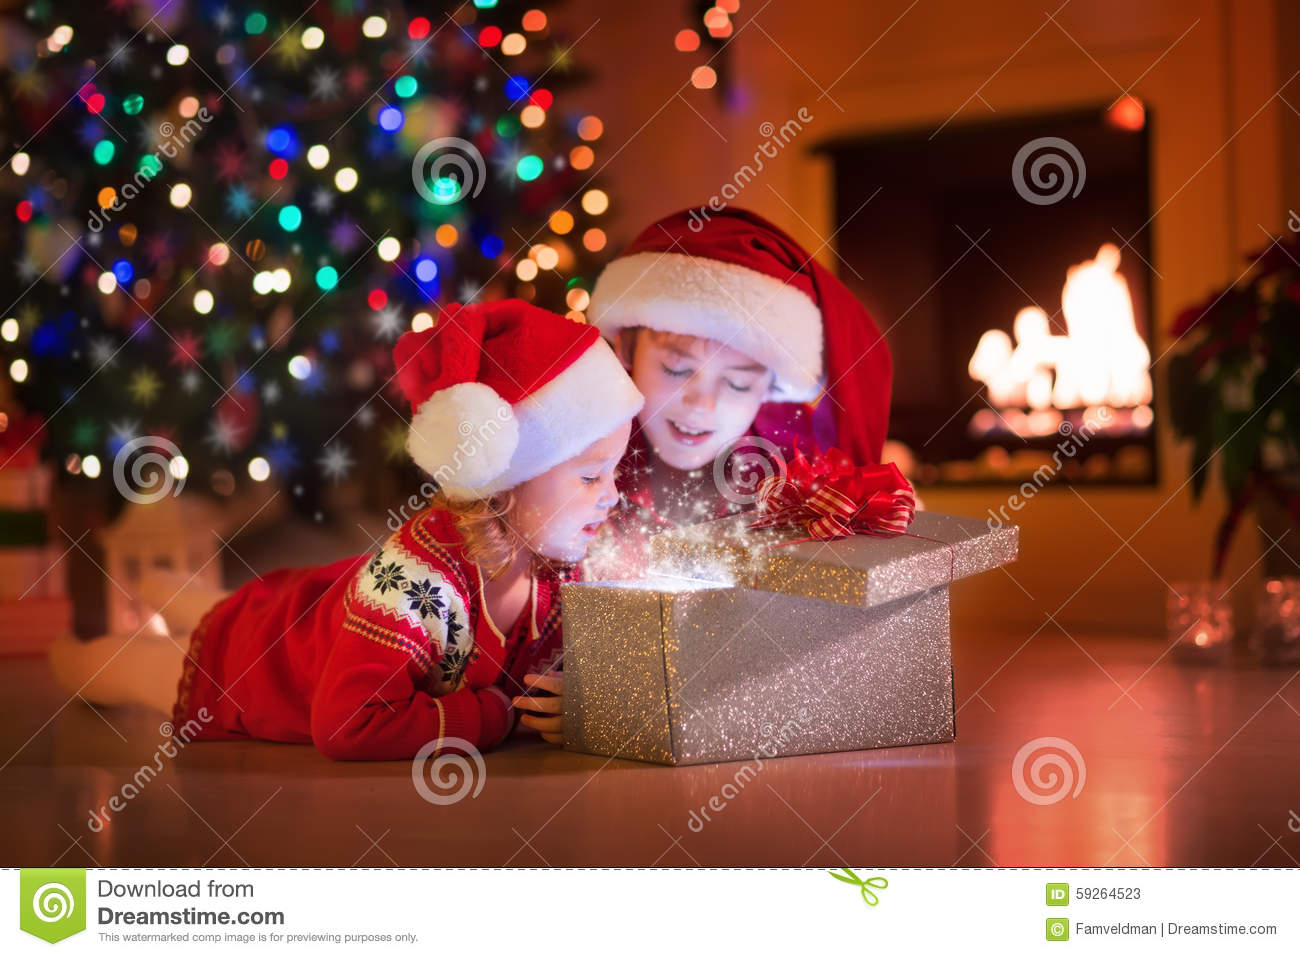 Kids Opening Christmas Presents At Fireplace Stock Photo - Image ...